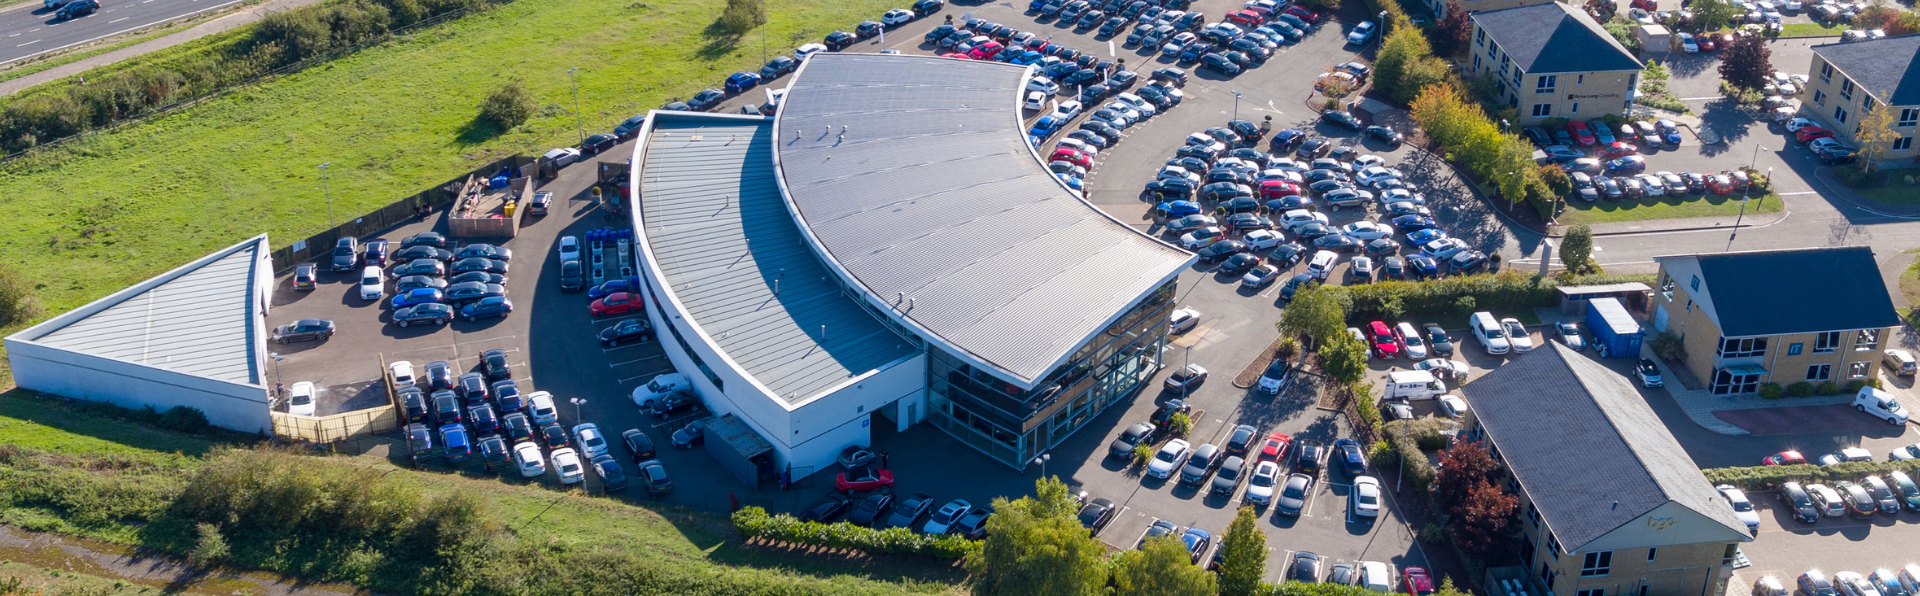 Large business park aerial photograph